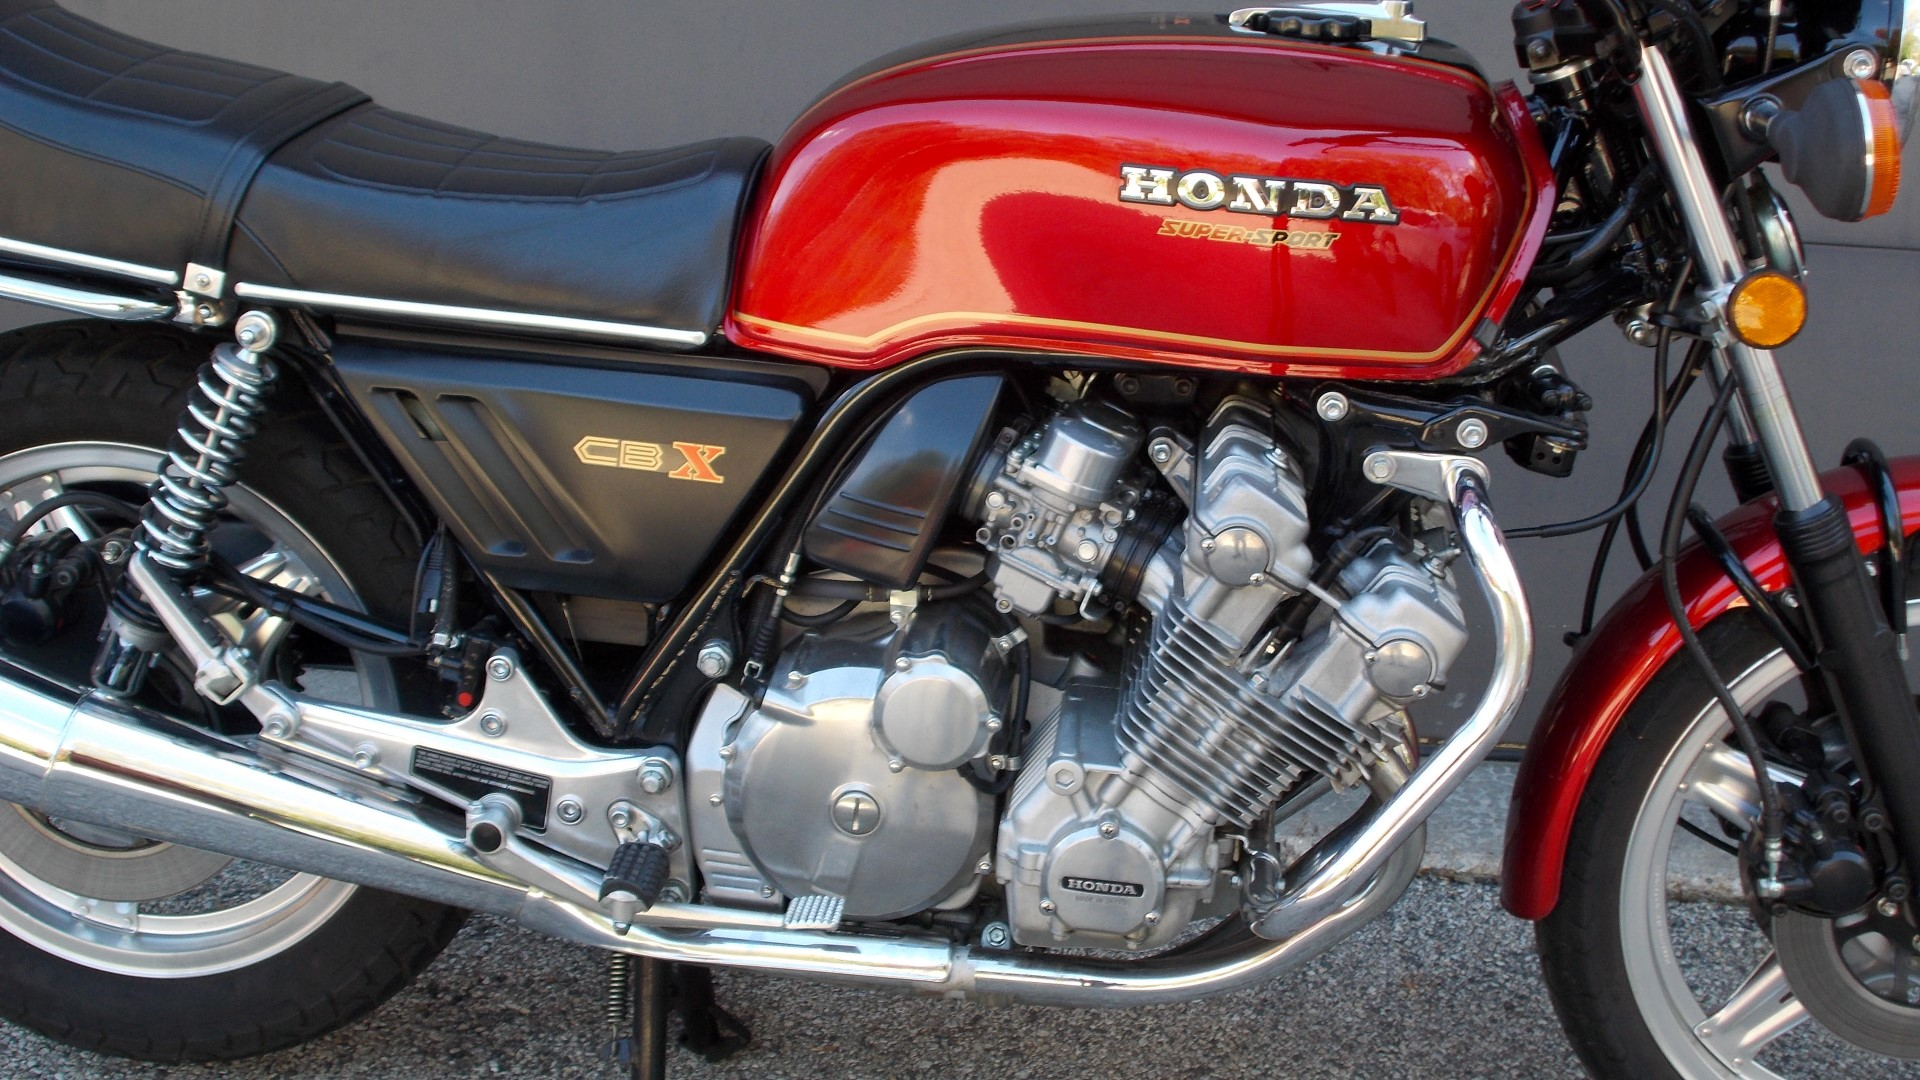 Cbx Archives Rare Sportbikes For Sale 1960s Honda Motorcycles From The Pictures Of Enormous Engine You Might Think Need To Be A Bow Legged Cowboy Ride One But Thanks Intelligent Design That Is Not